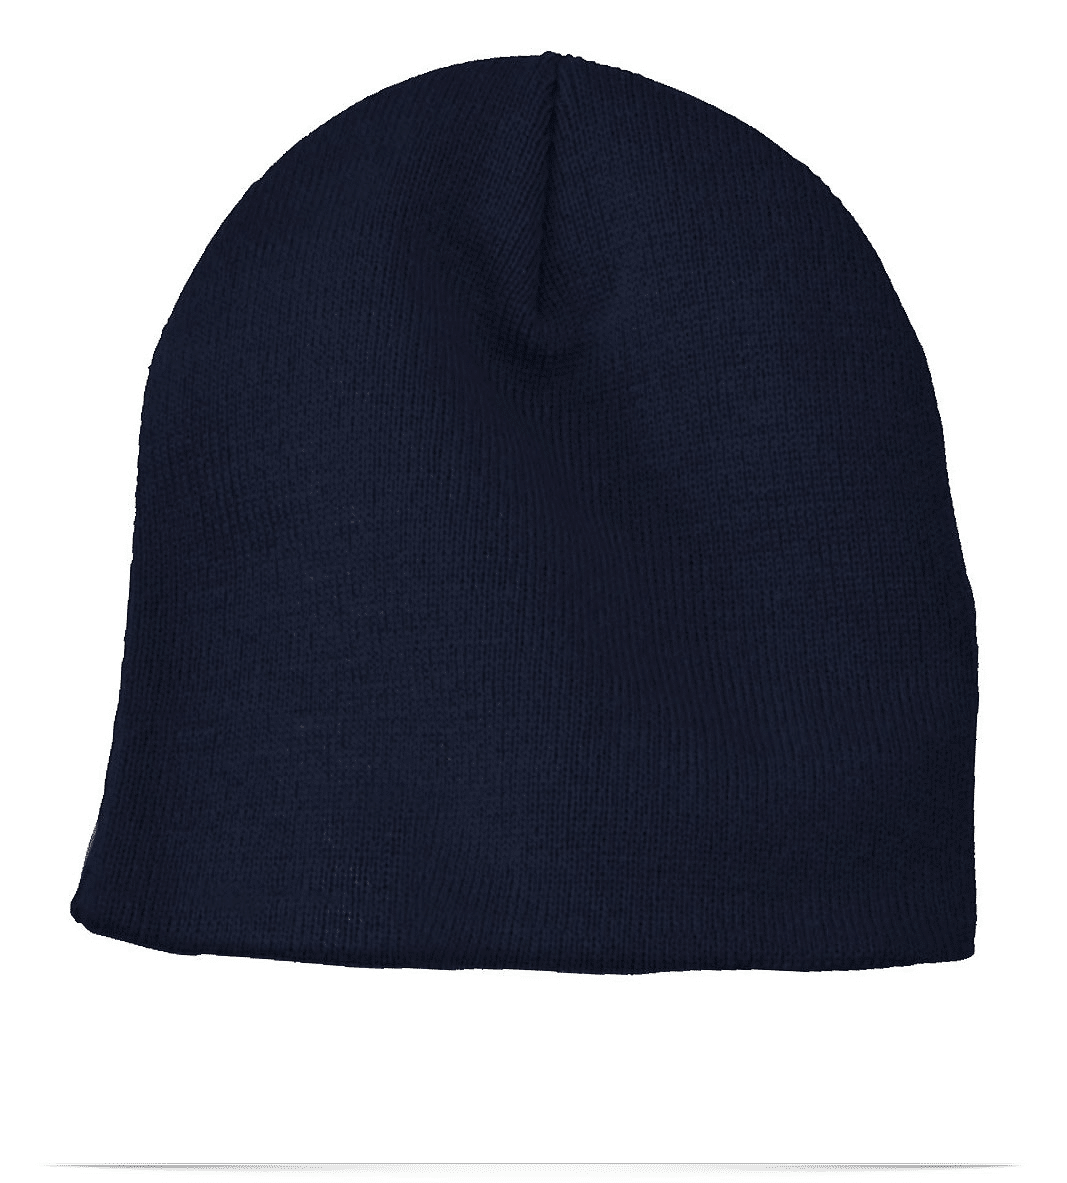 15c81f73aa802b Beanies and Knitted Hats with Custom Logo Embroidery